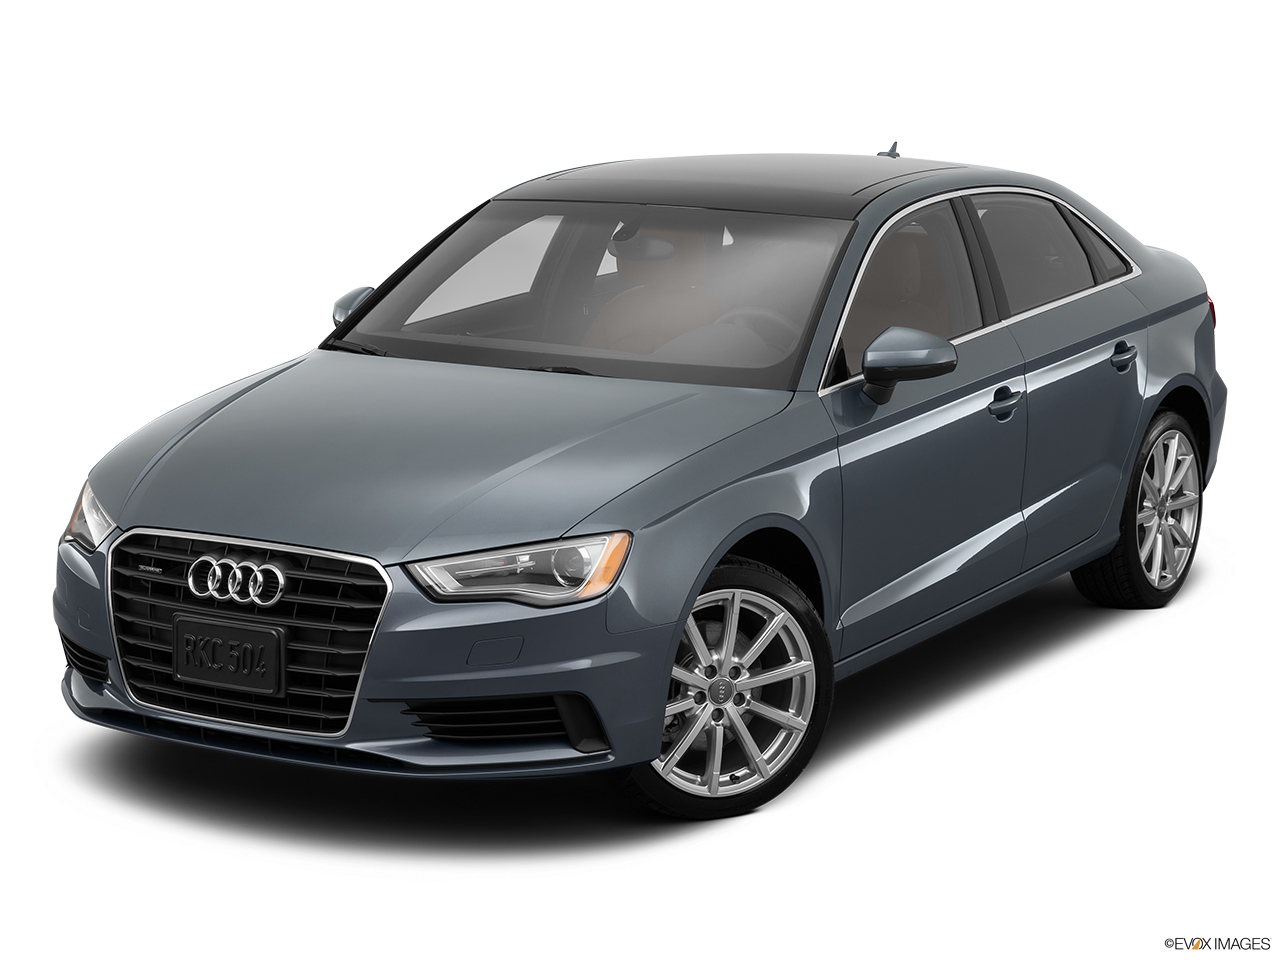 2015 audi a3 sedan quattro 2 0t premium plus. Black Bedroom Furniture Sets. Home Design Ideas